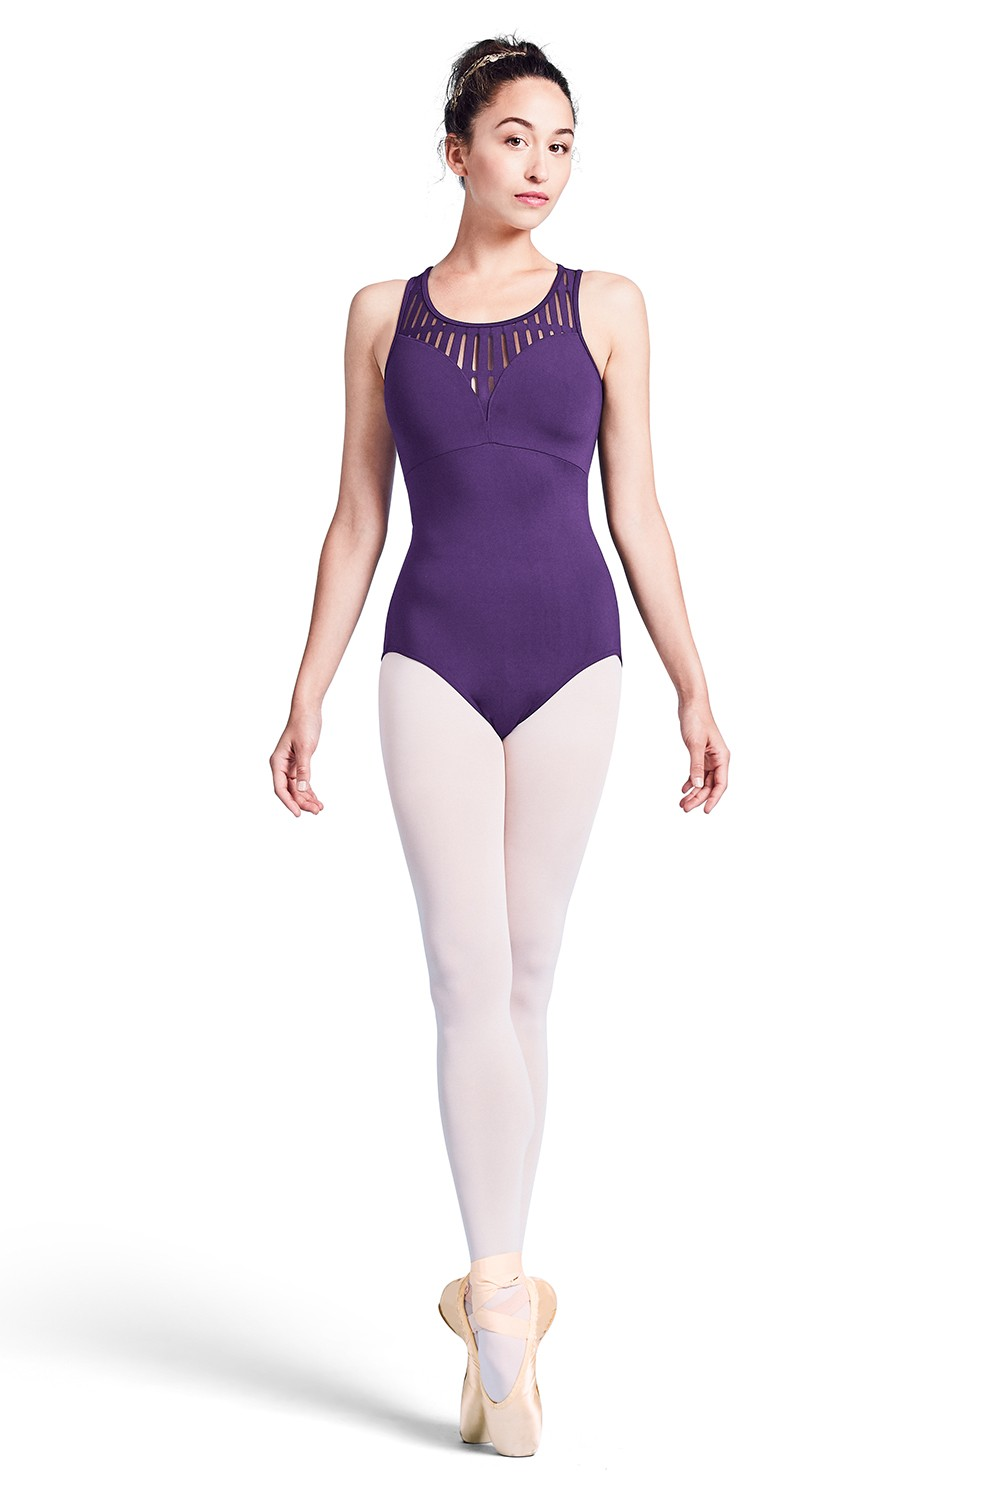 Justaucorps Avec Fermeture Zip Au Dos Womens Tank Leotards